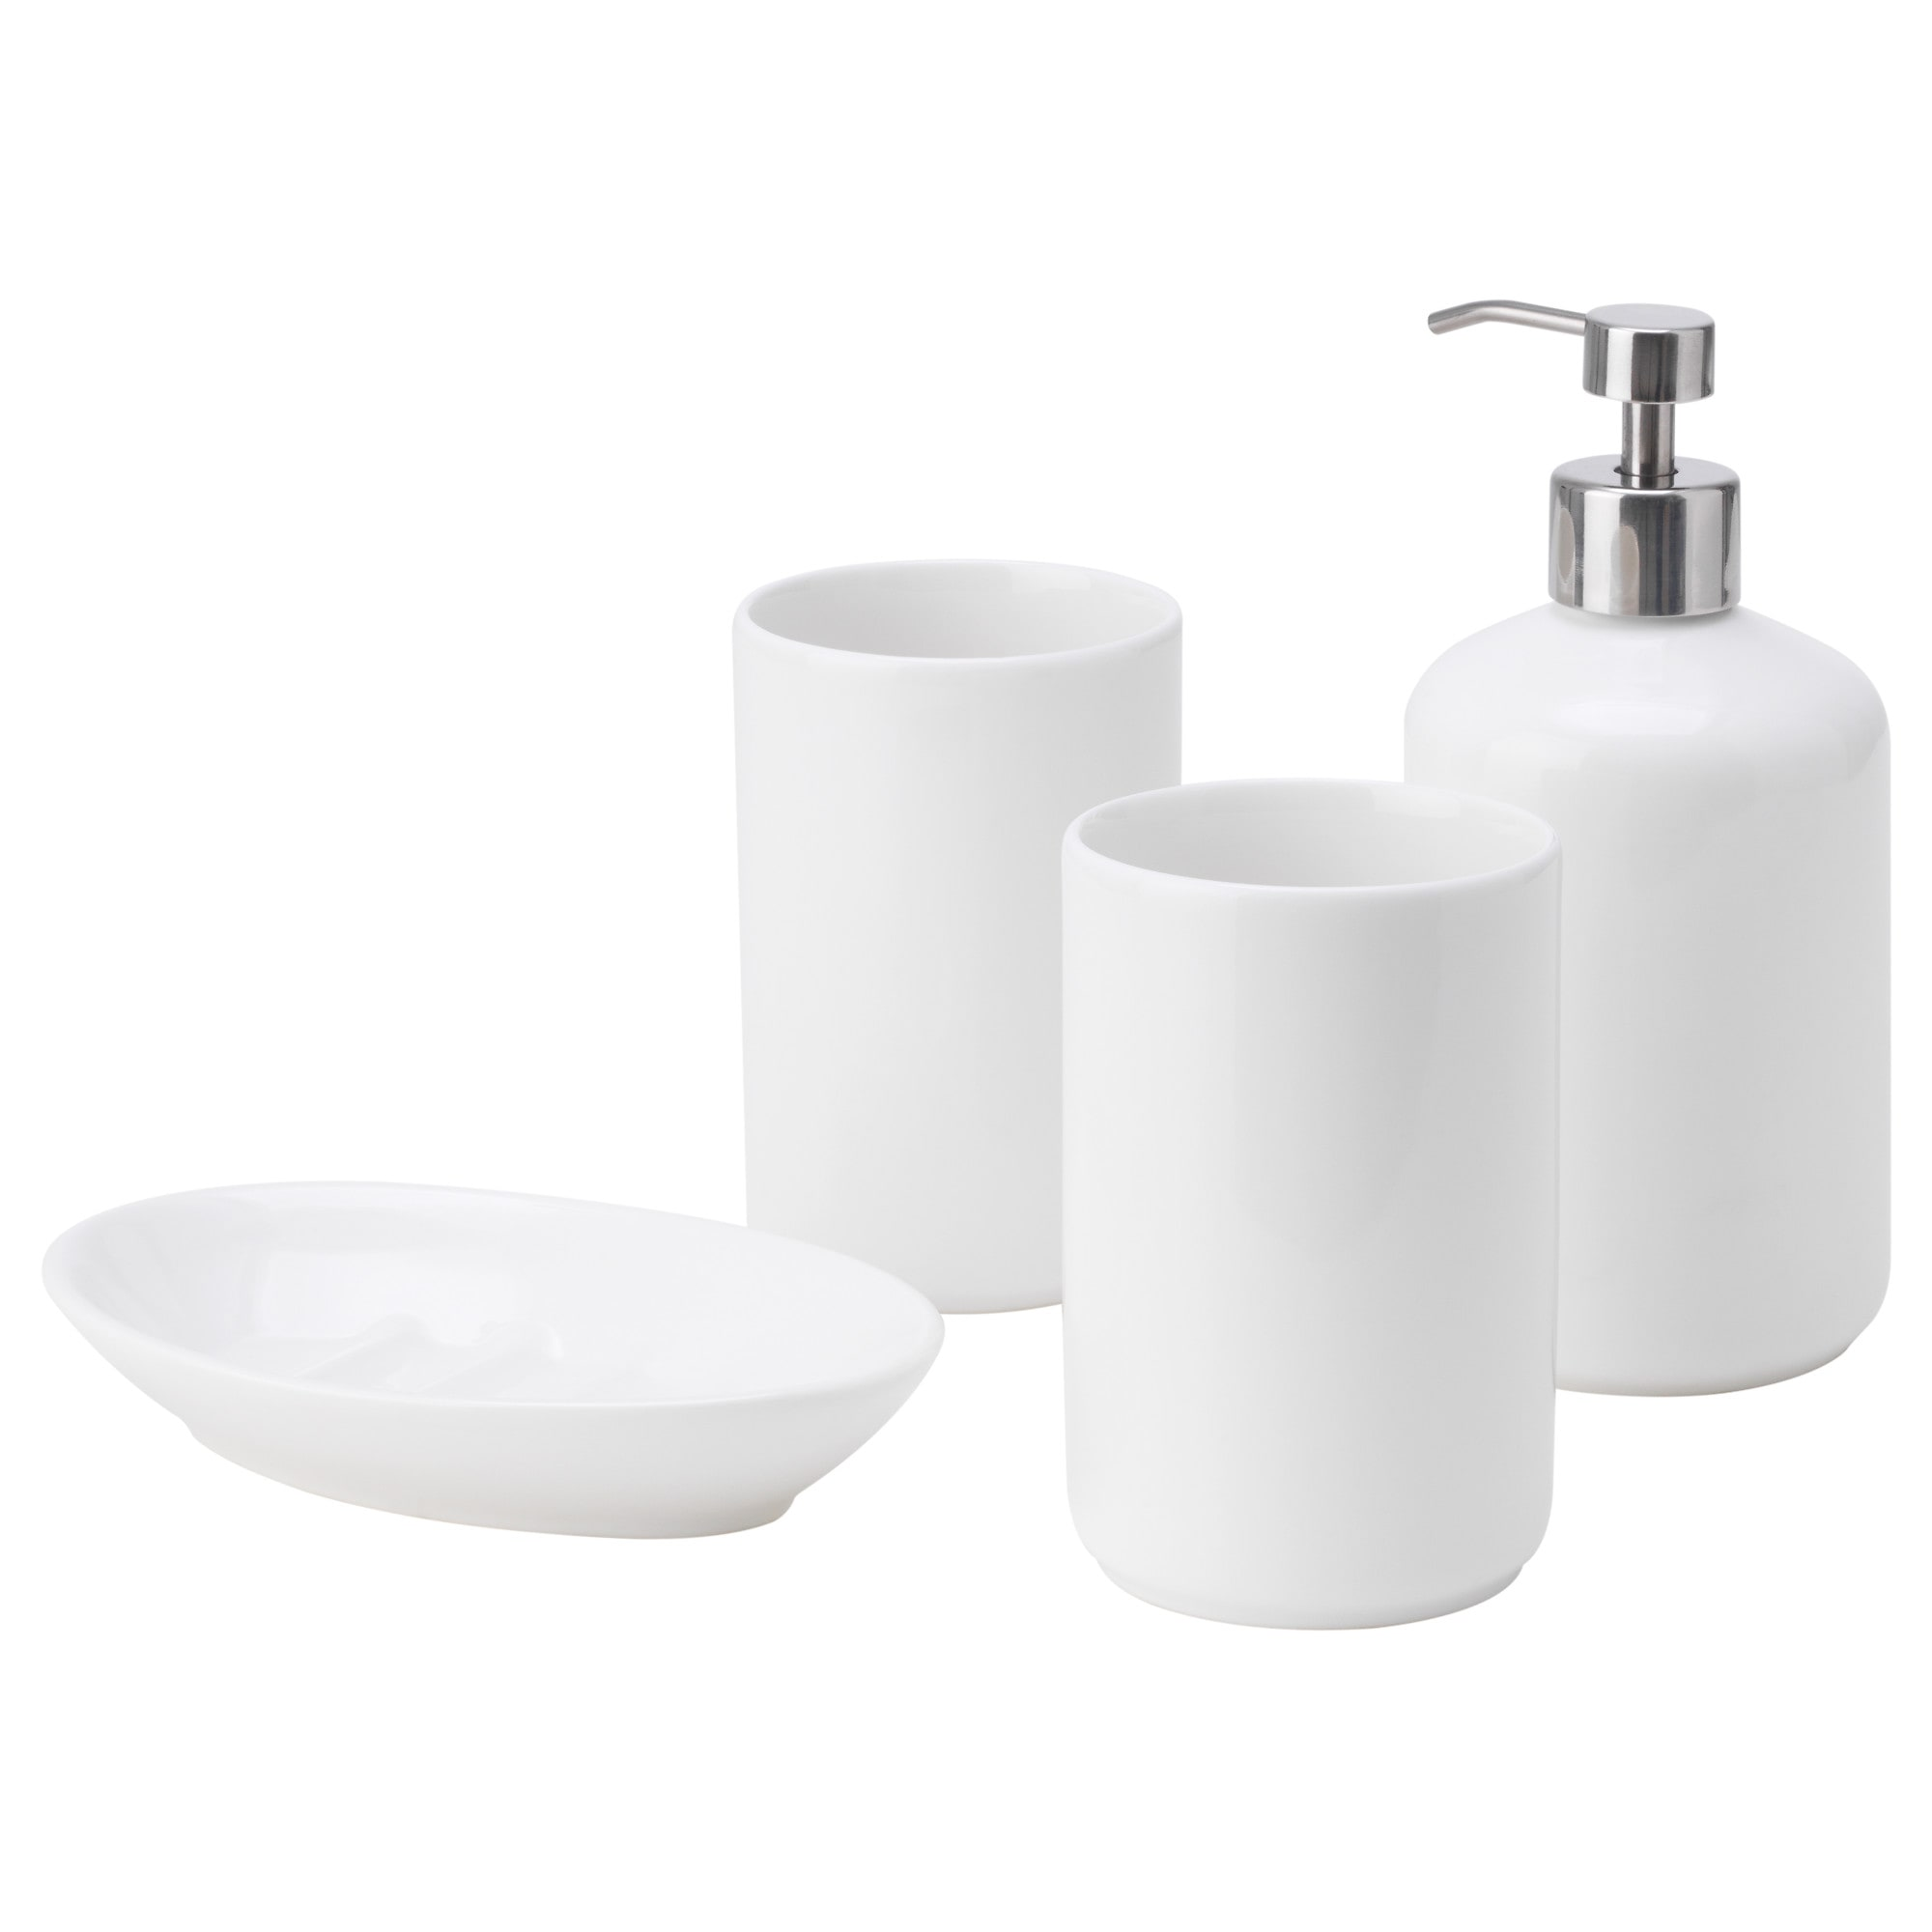 boasj 4 piece bathroom set white